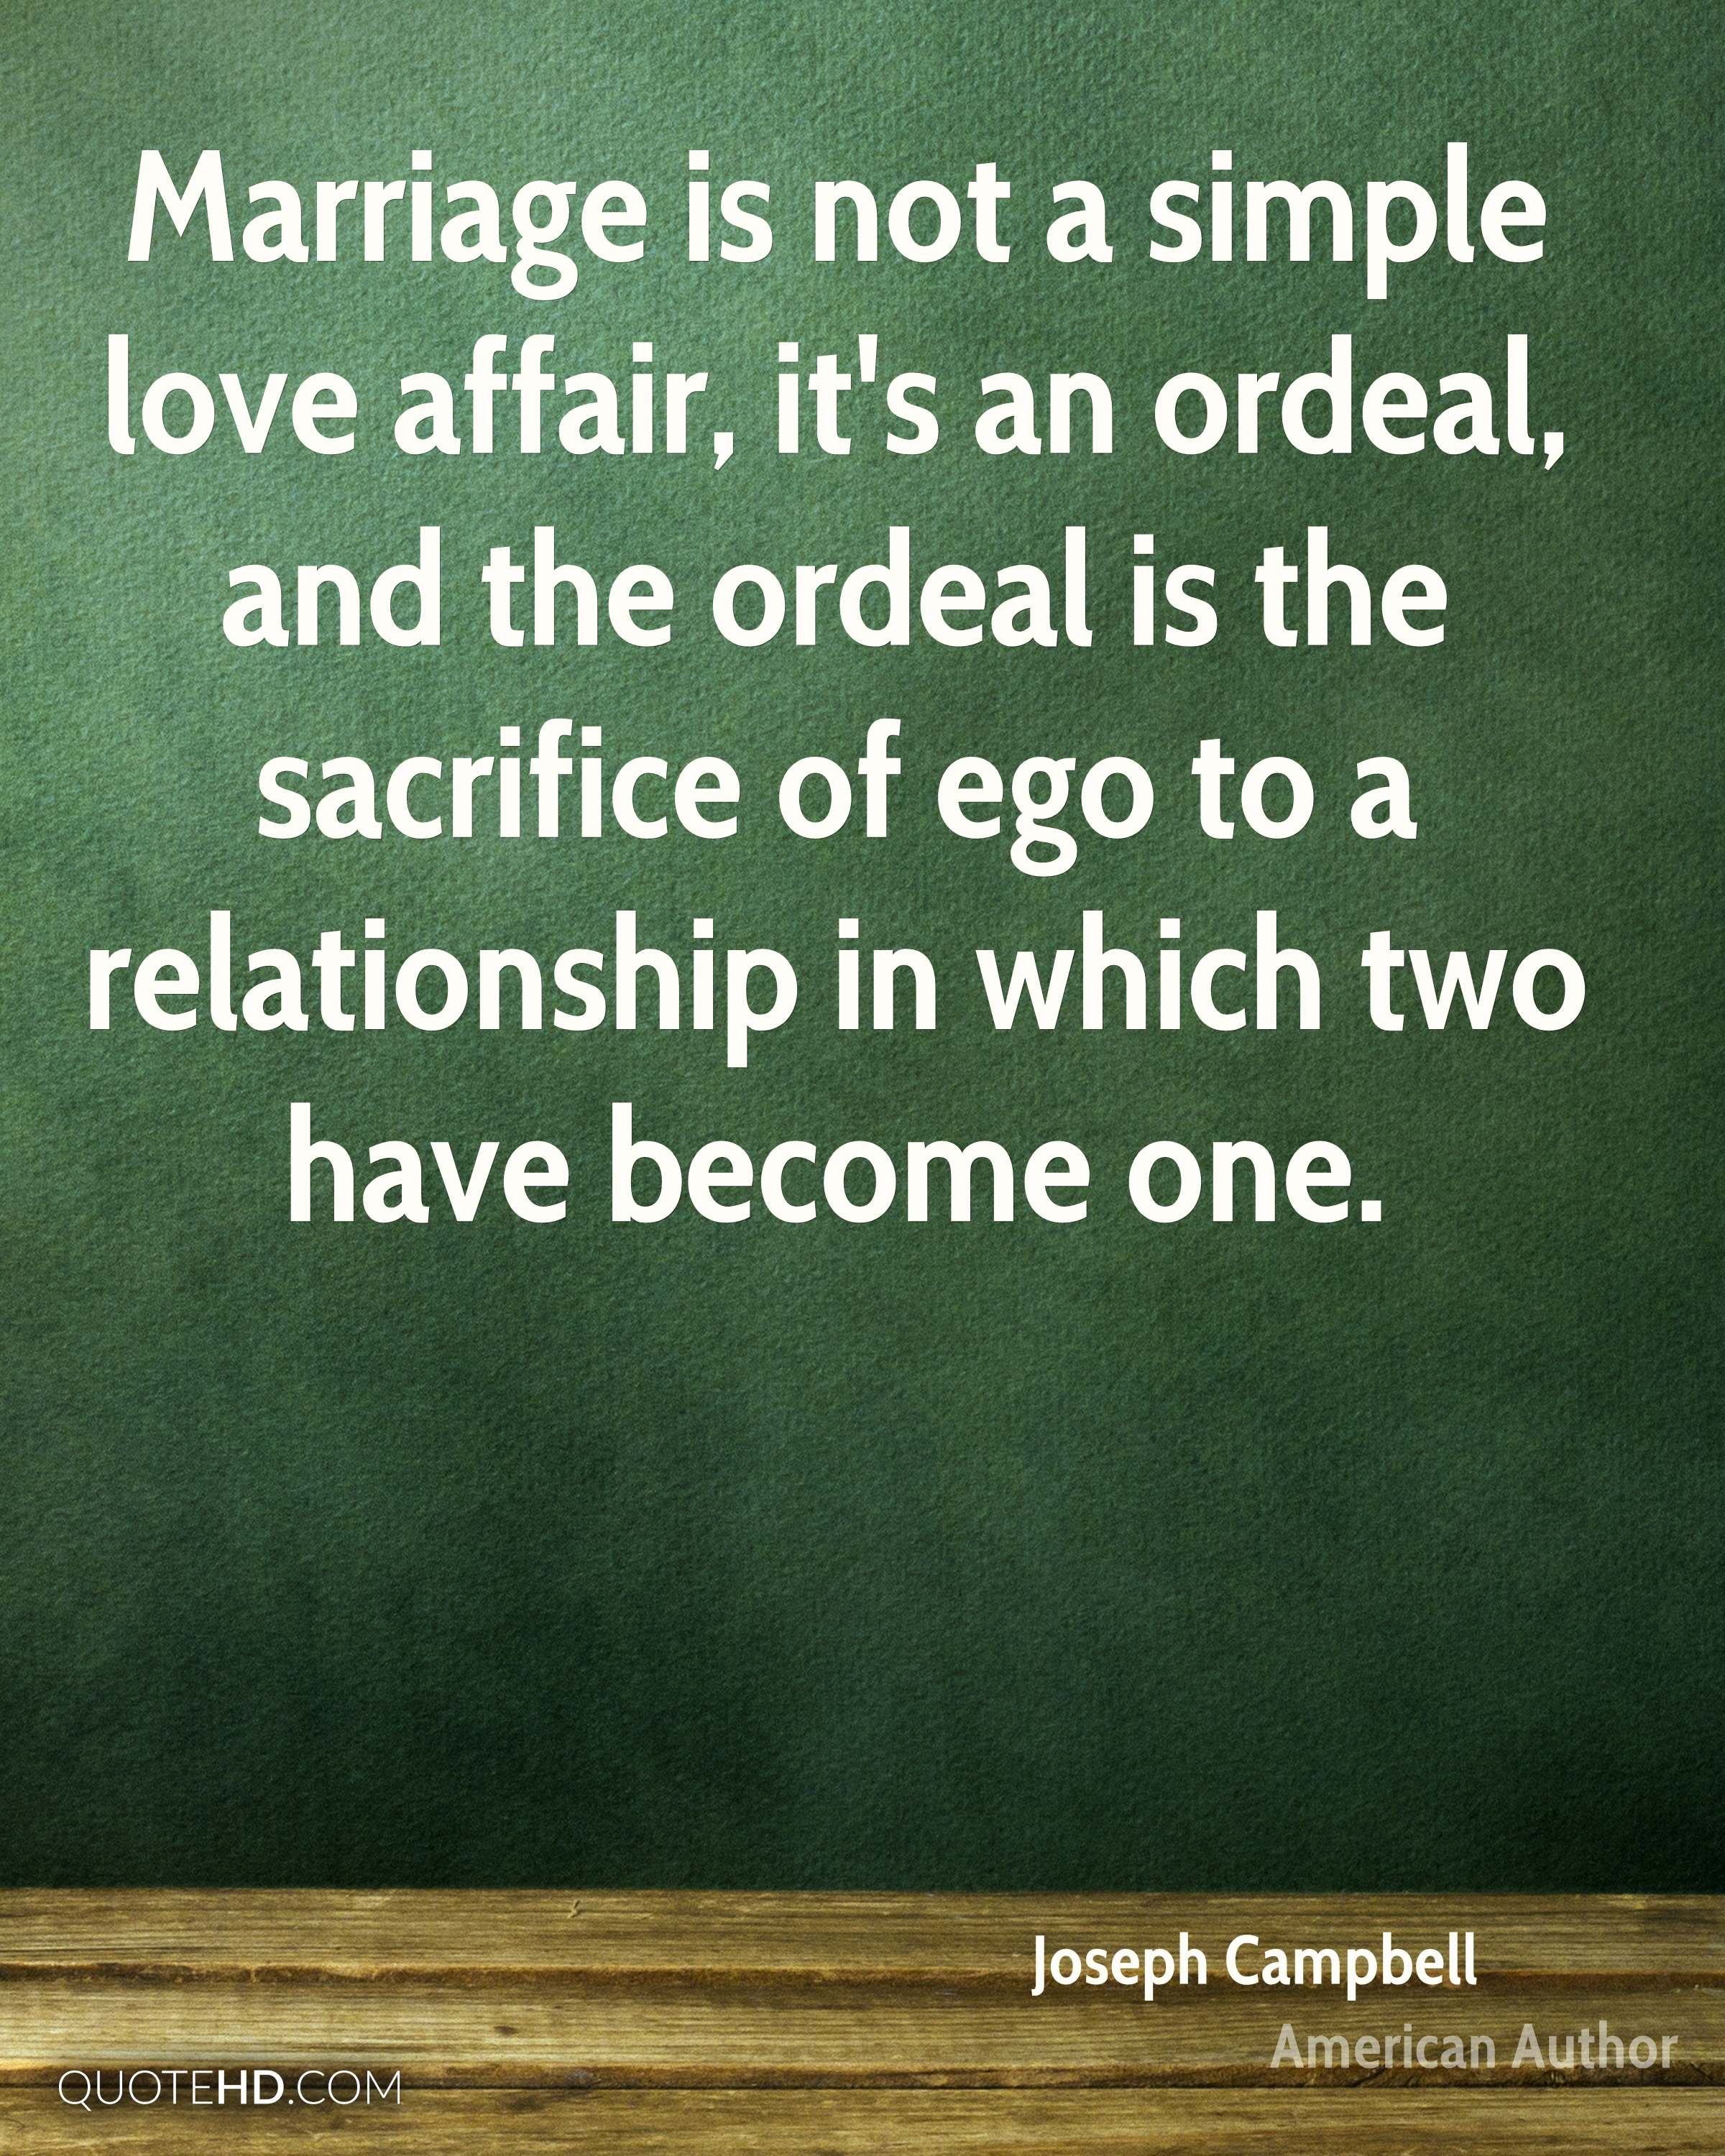 Marriage is not a simple love affair, it's an ordeal, and the ordeal is the sacrifice of ego to a relationship in which two have become one.